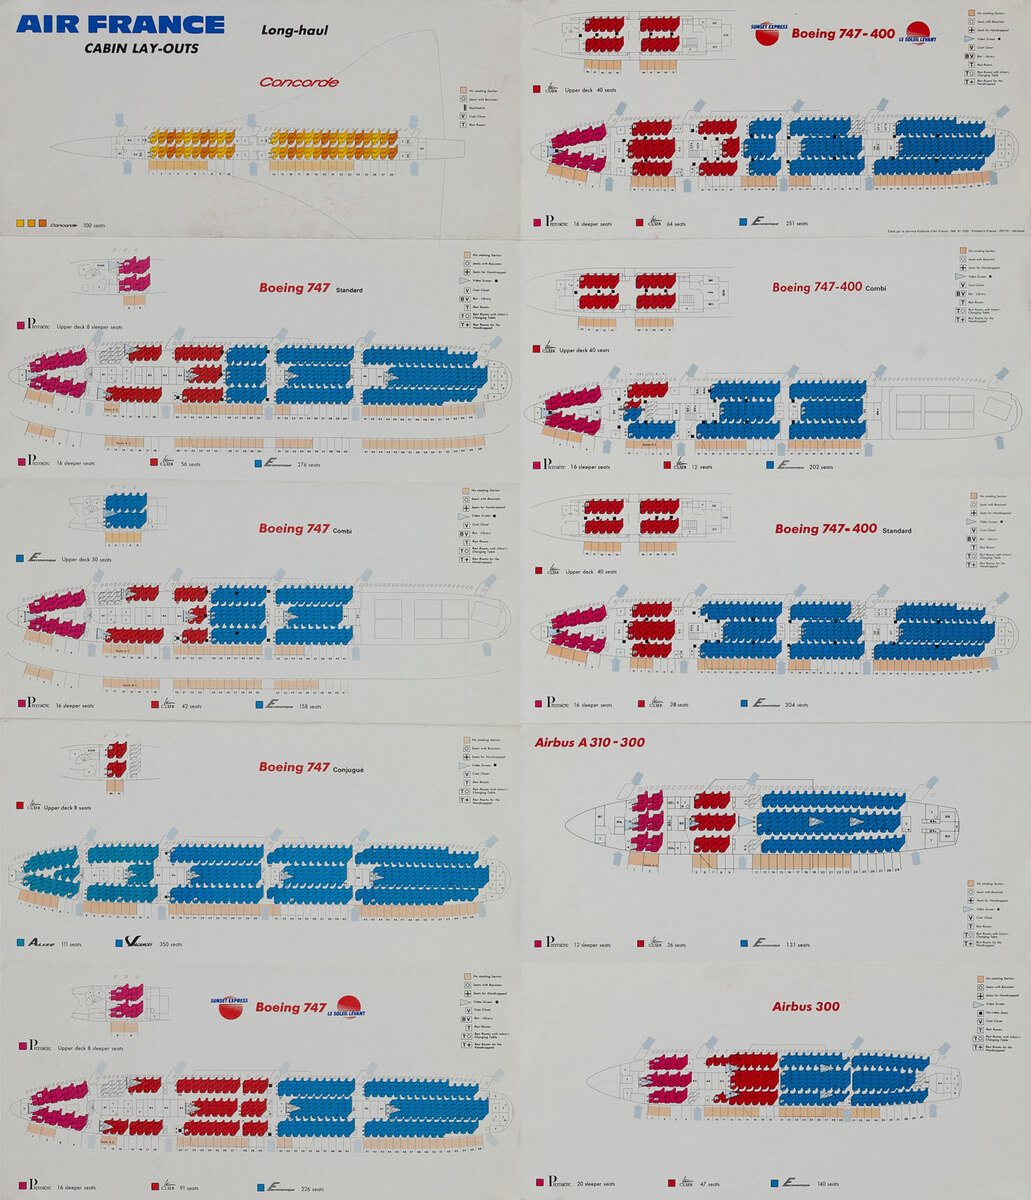 Air France Cabin Layouts